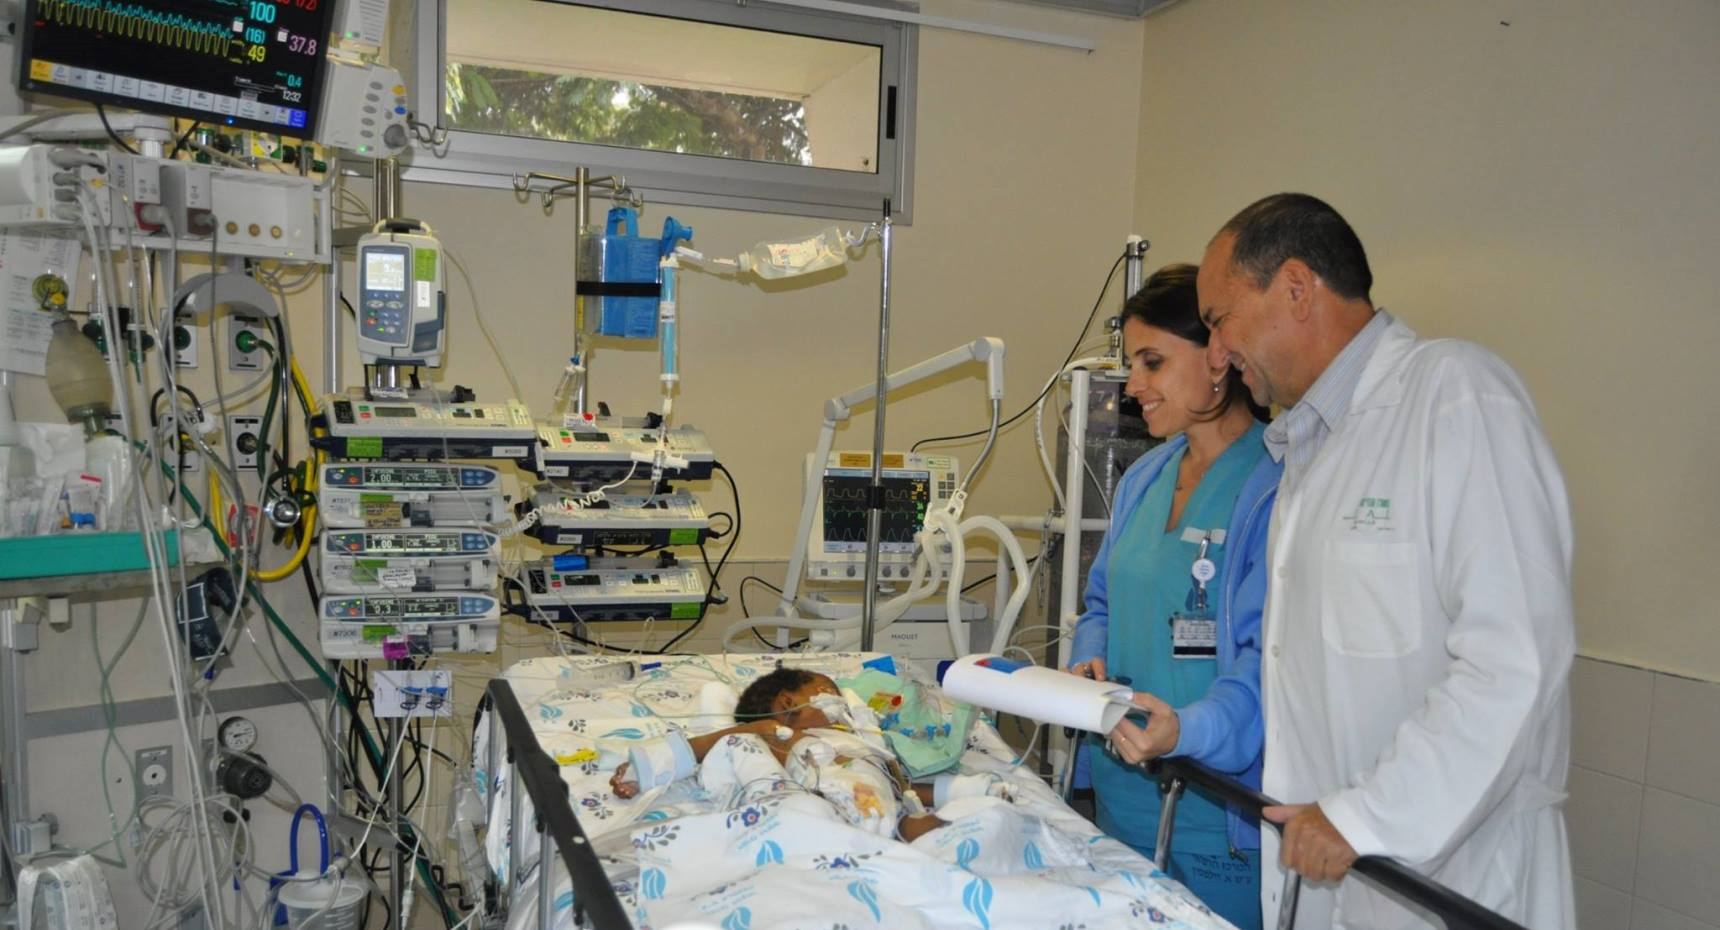 Dr. Sion Houri, head of the pediatric intensive care unit at Wolfson Medical Center, and head nurse Irena Nosel, tending to Dorice. Photo by Rachel Werner